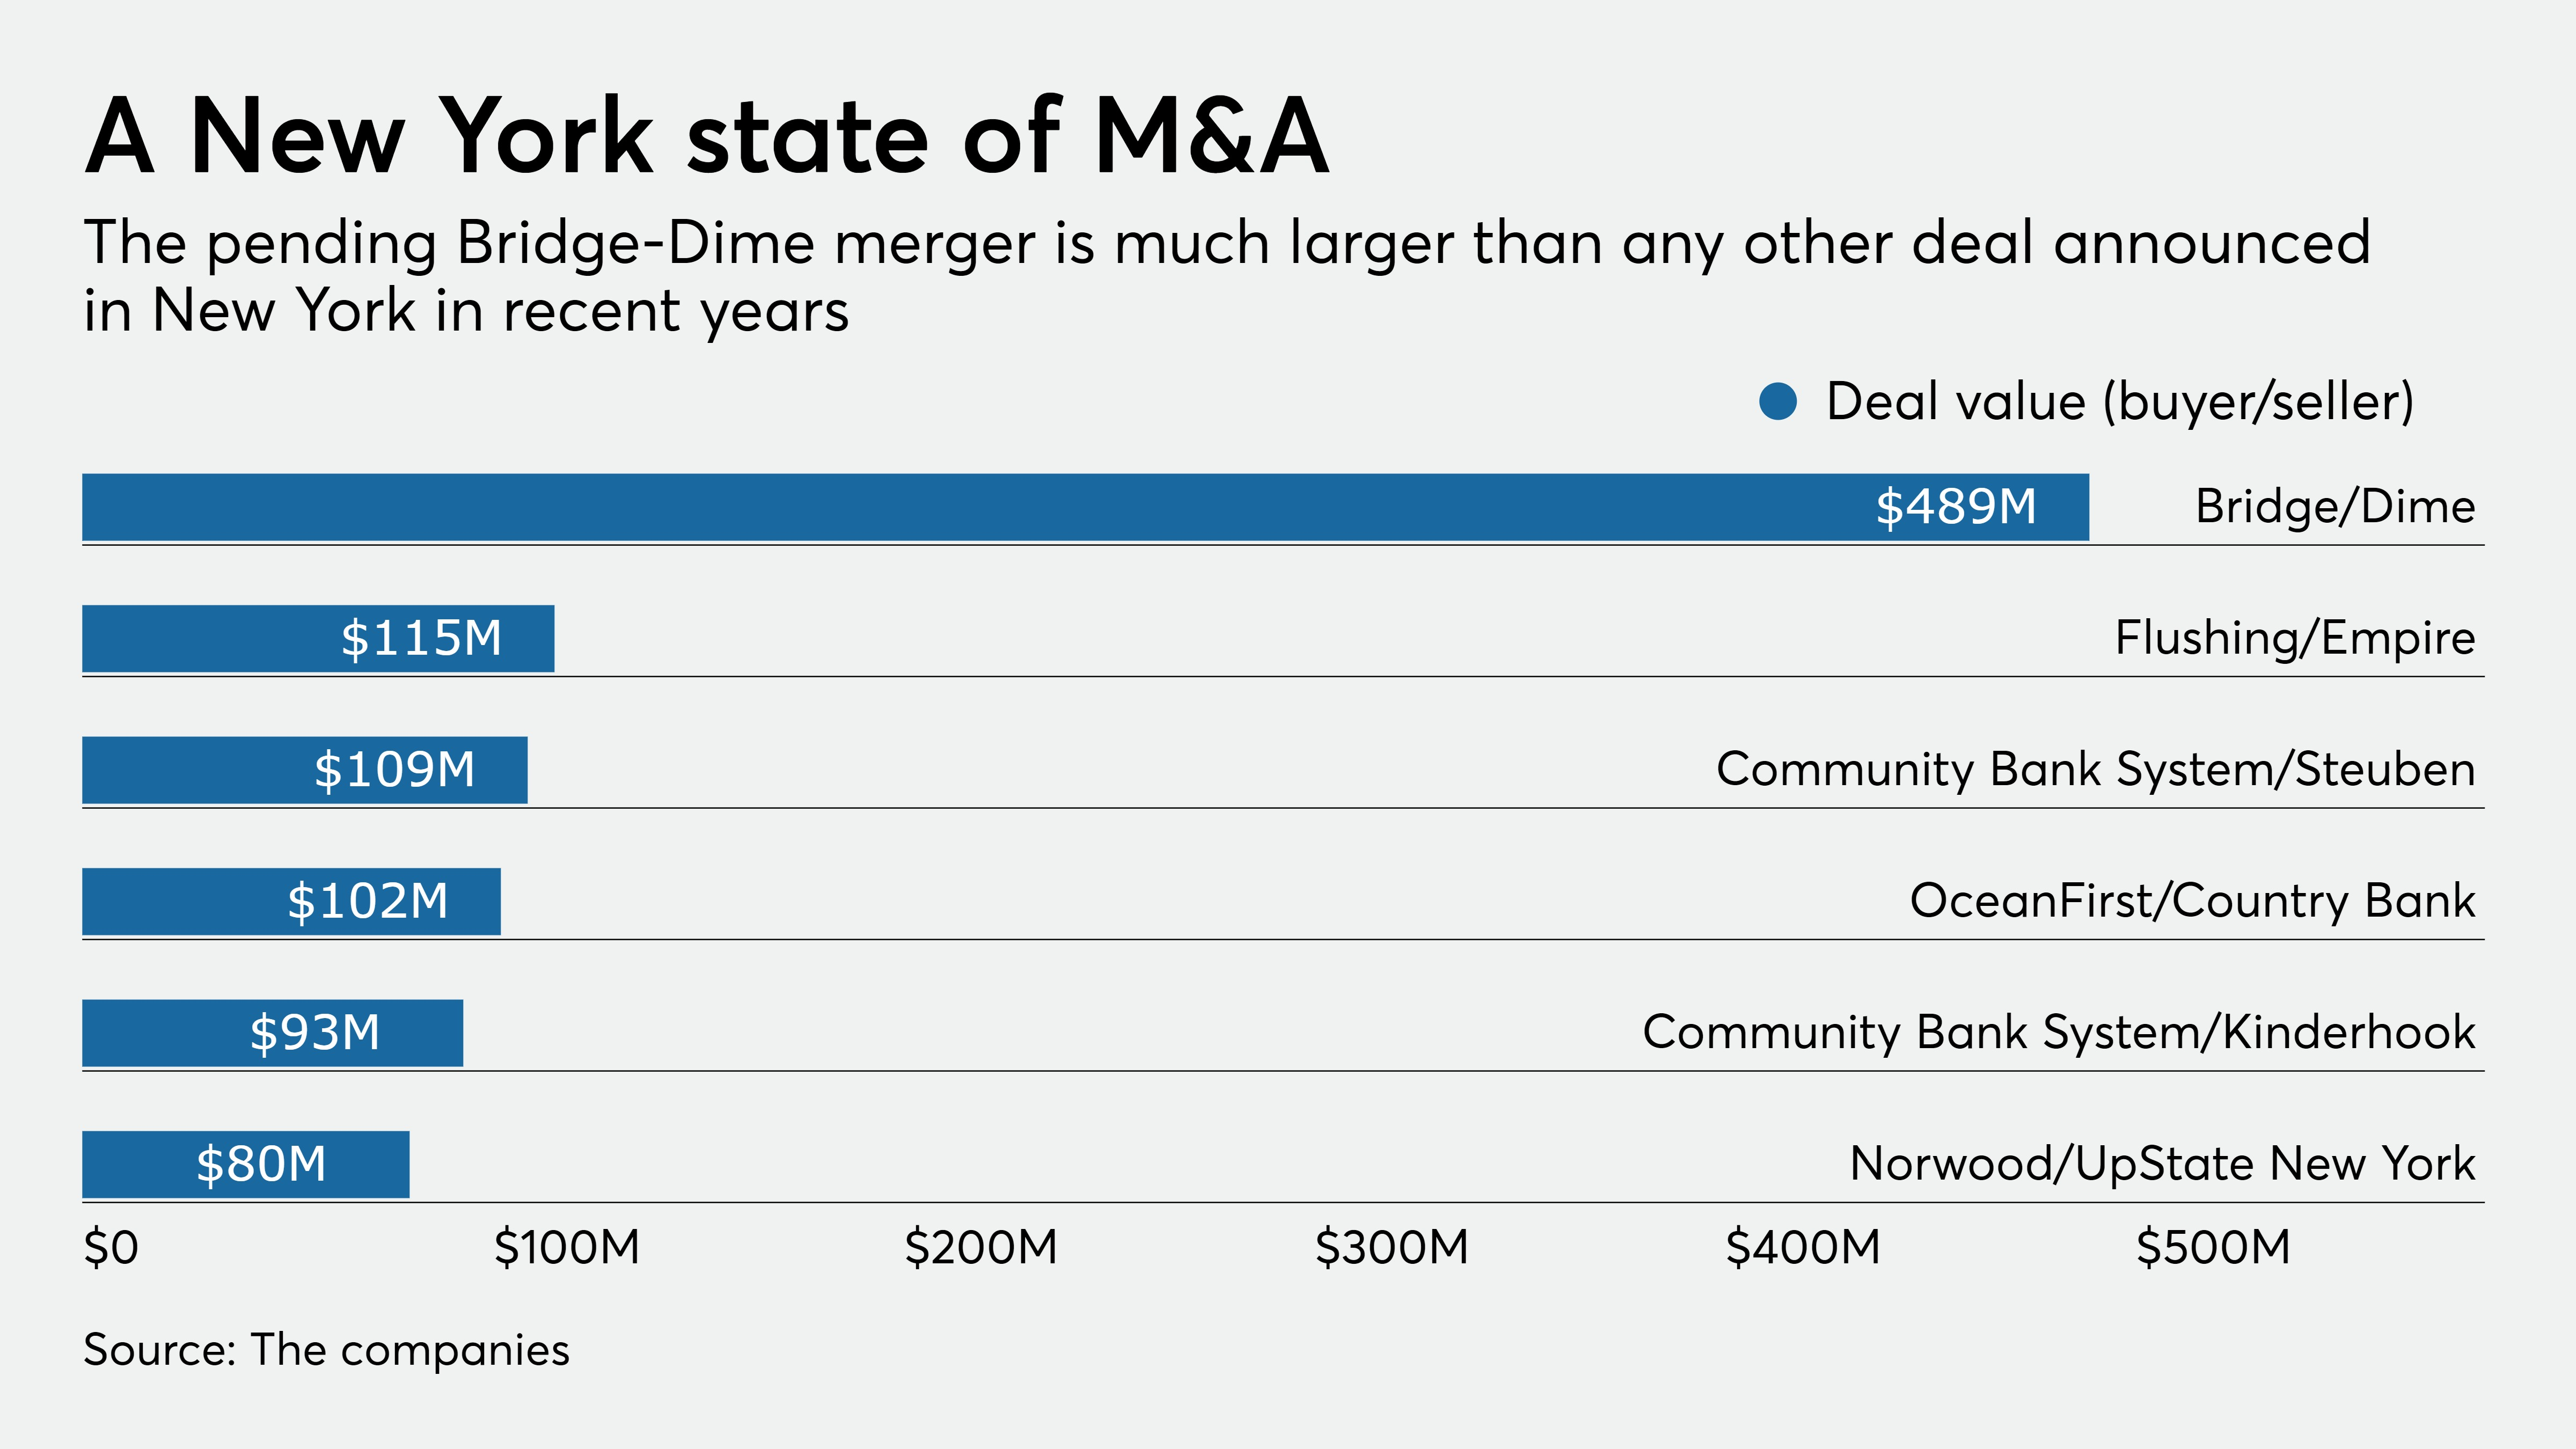 americanbanker.com - John Reosti - Dime-Bridge a conventional deal in unconventional times